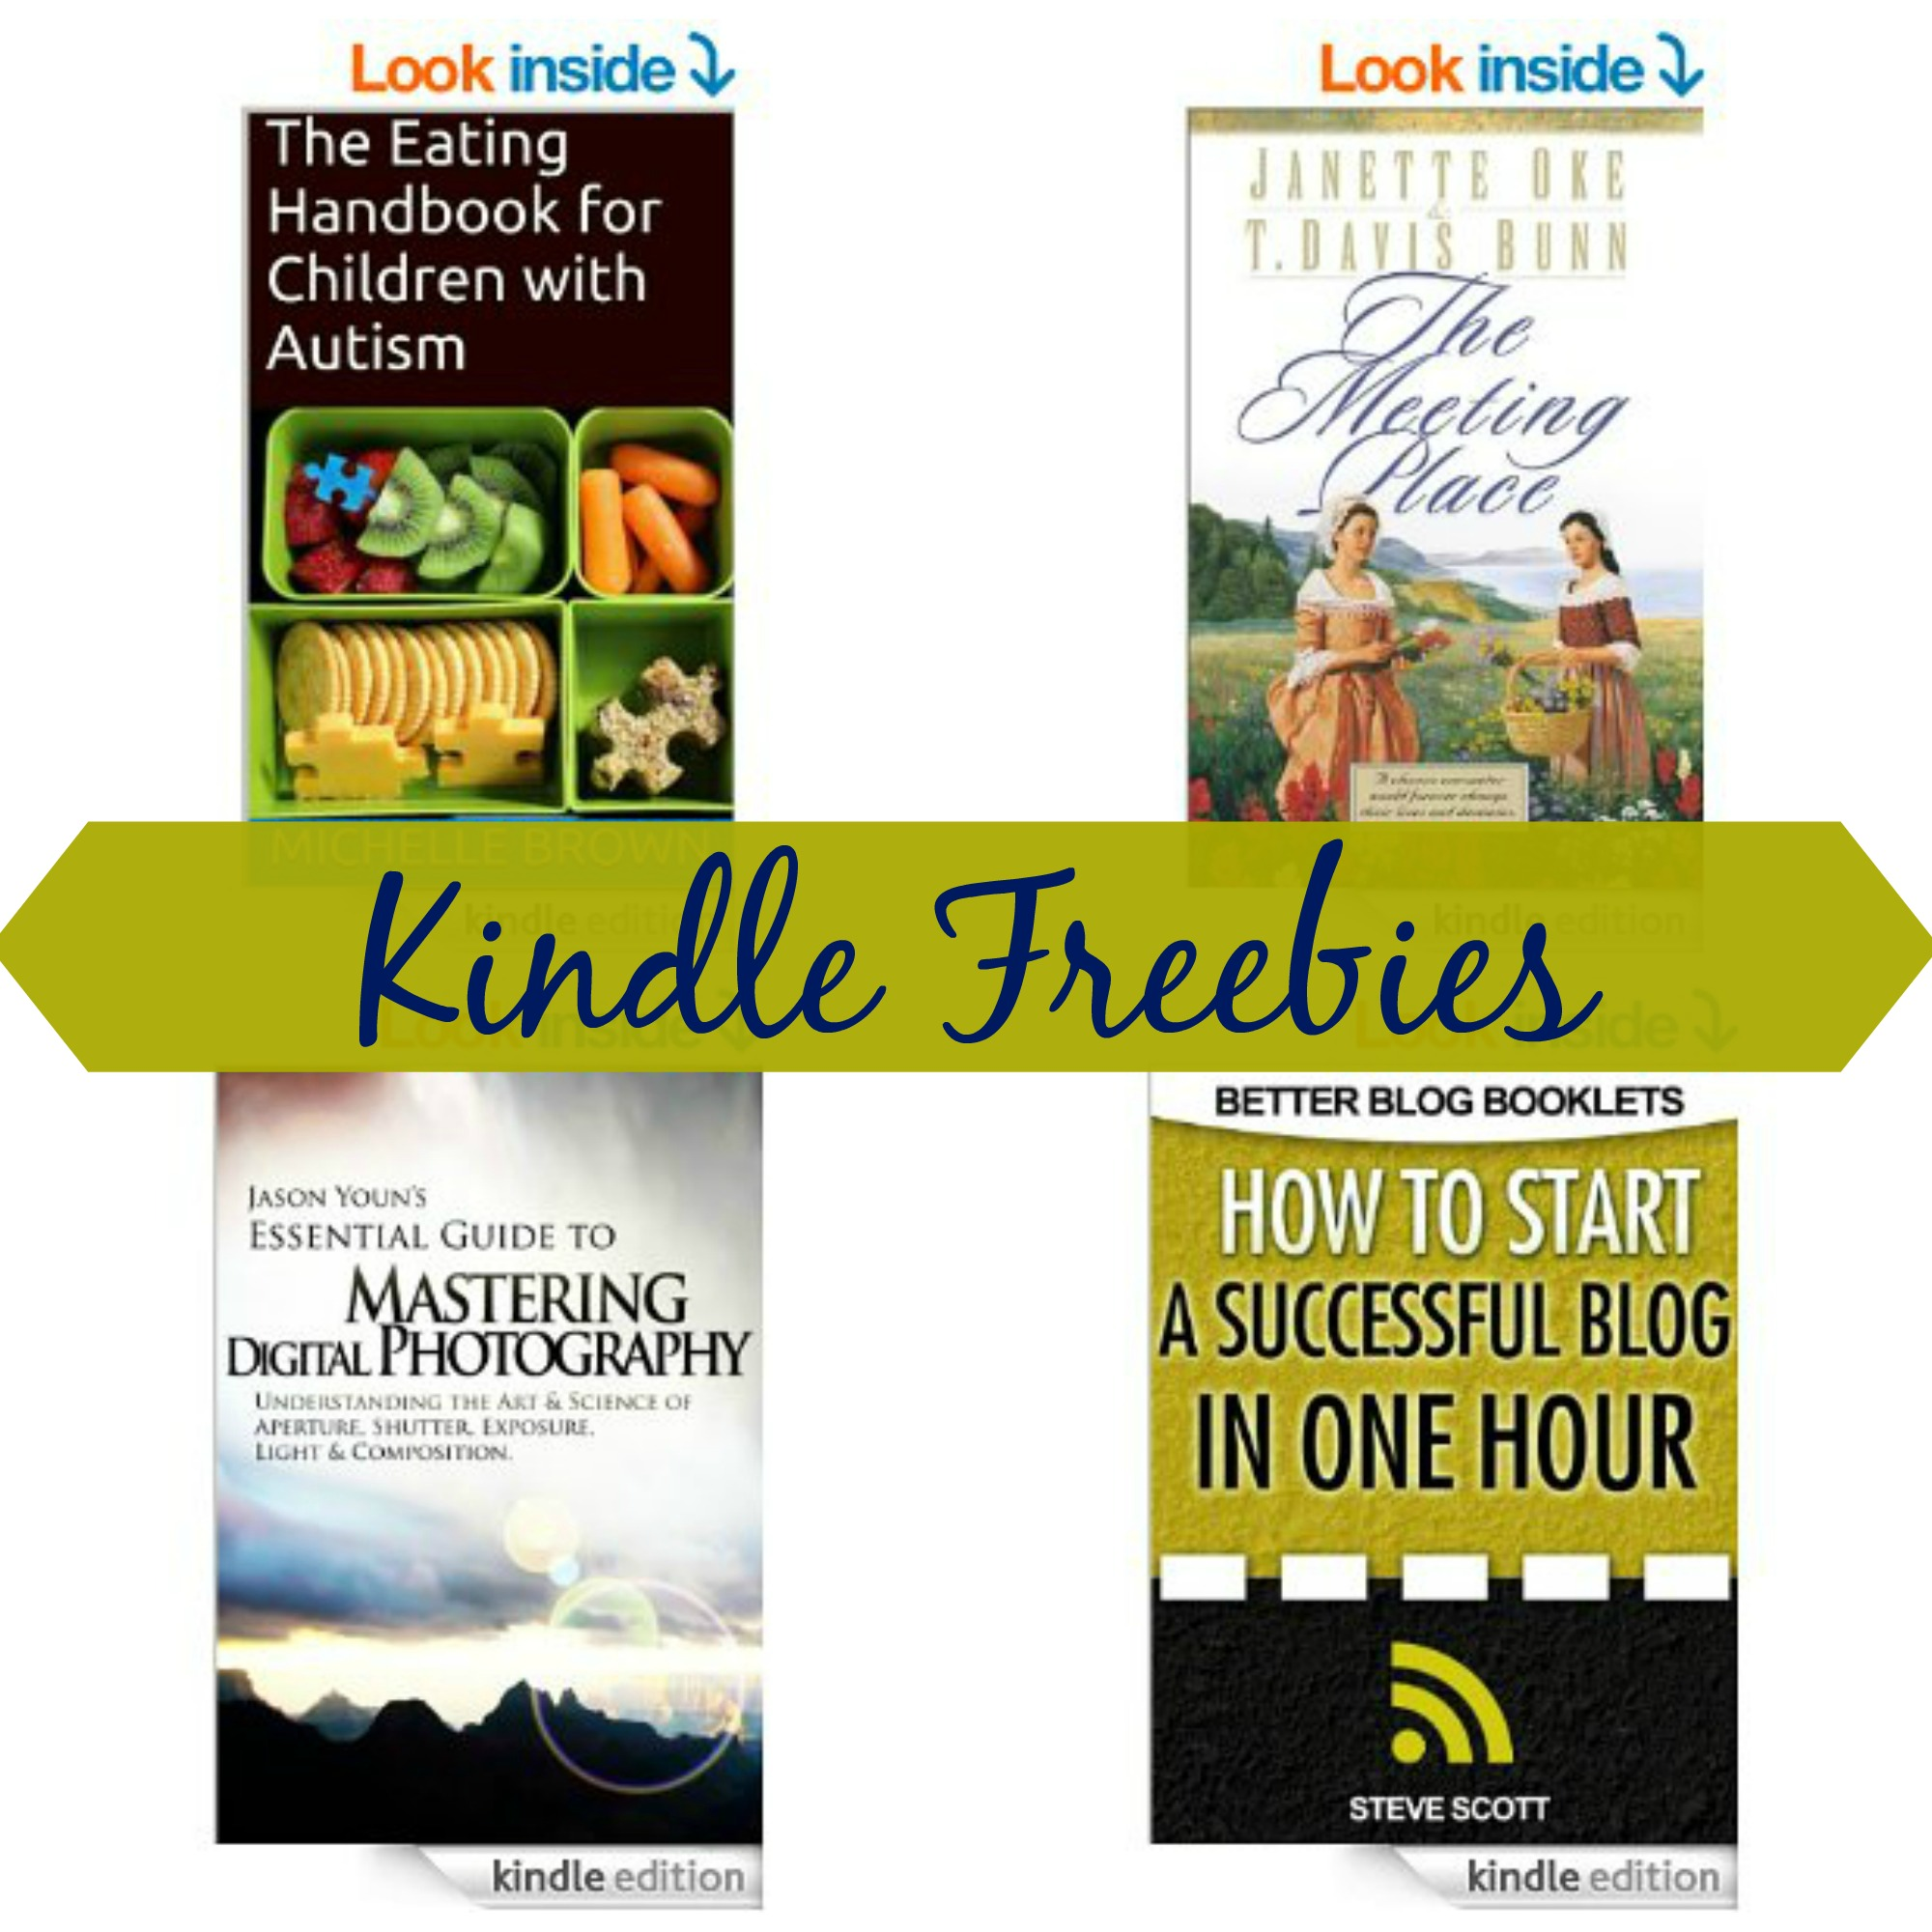 11 Kindle Freebies Low Cost Gardening The Eating